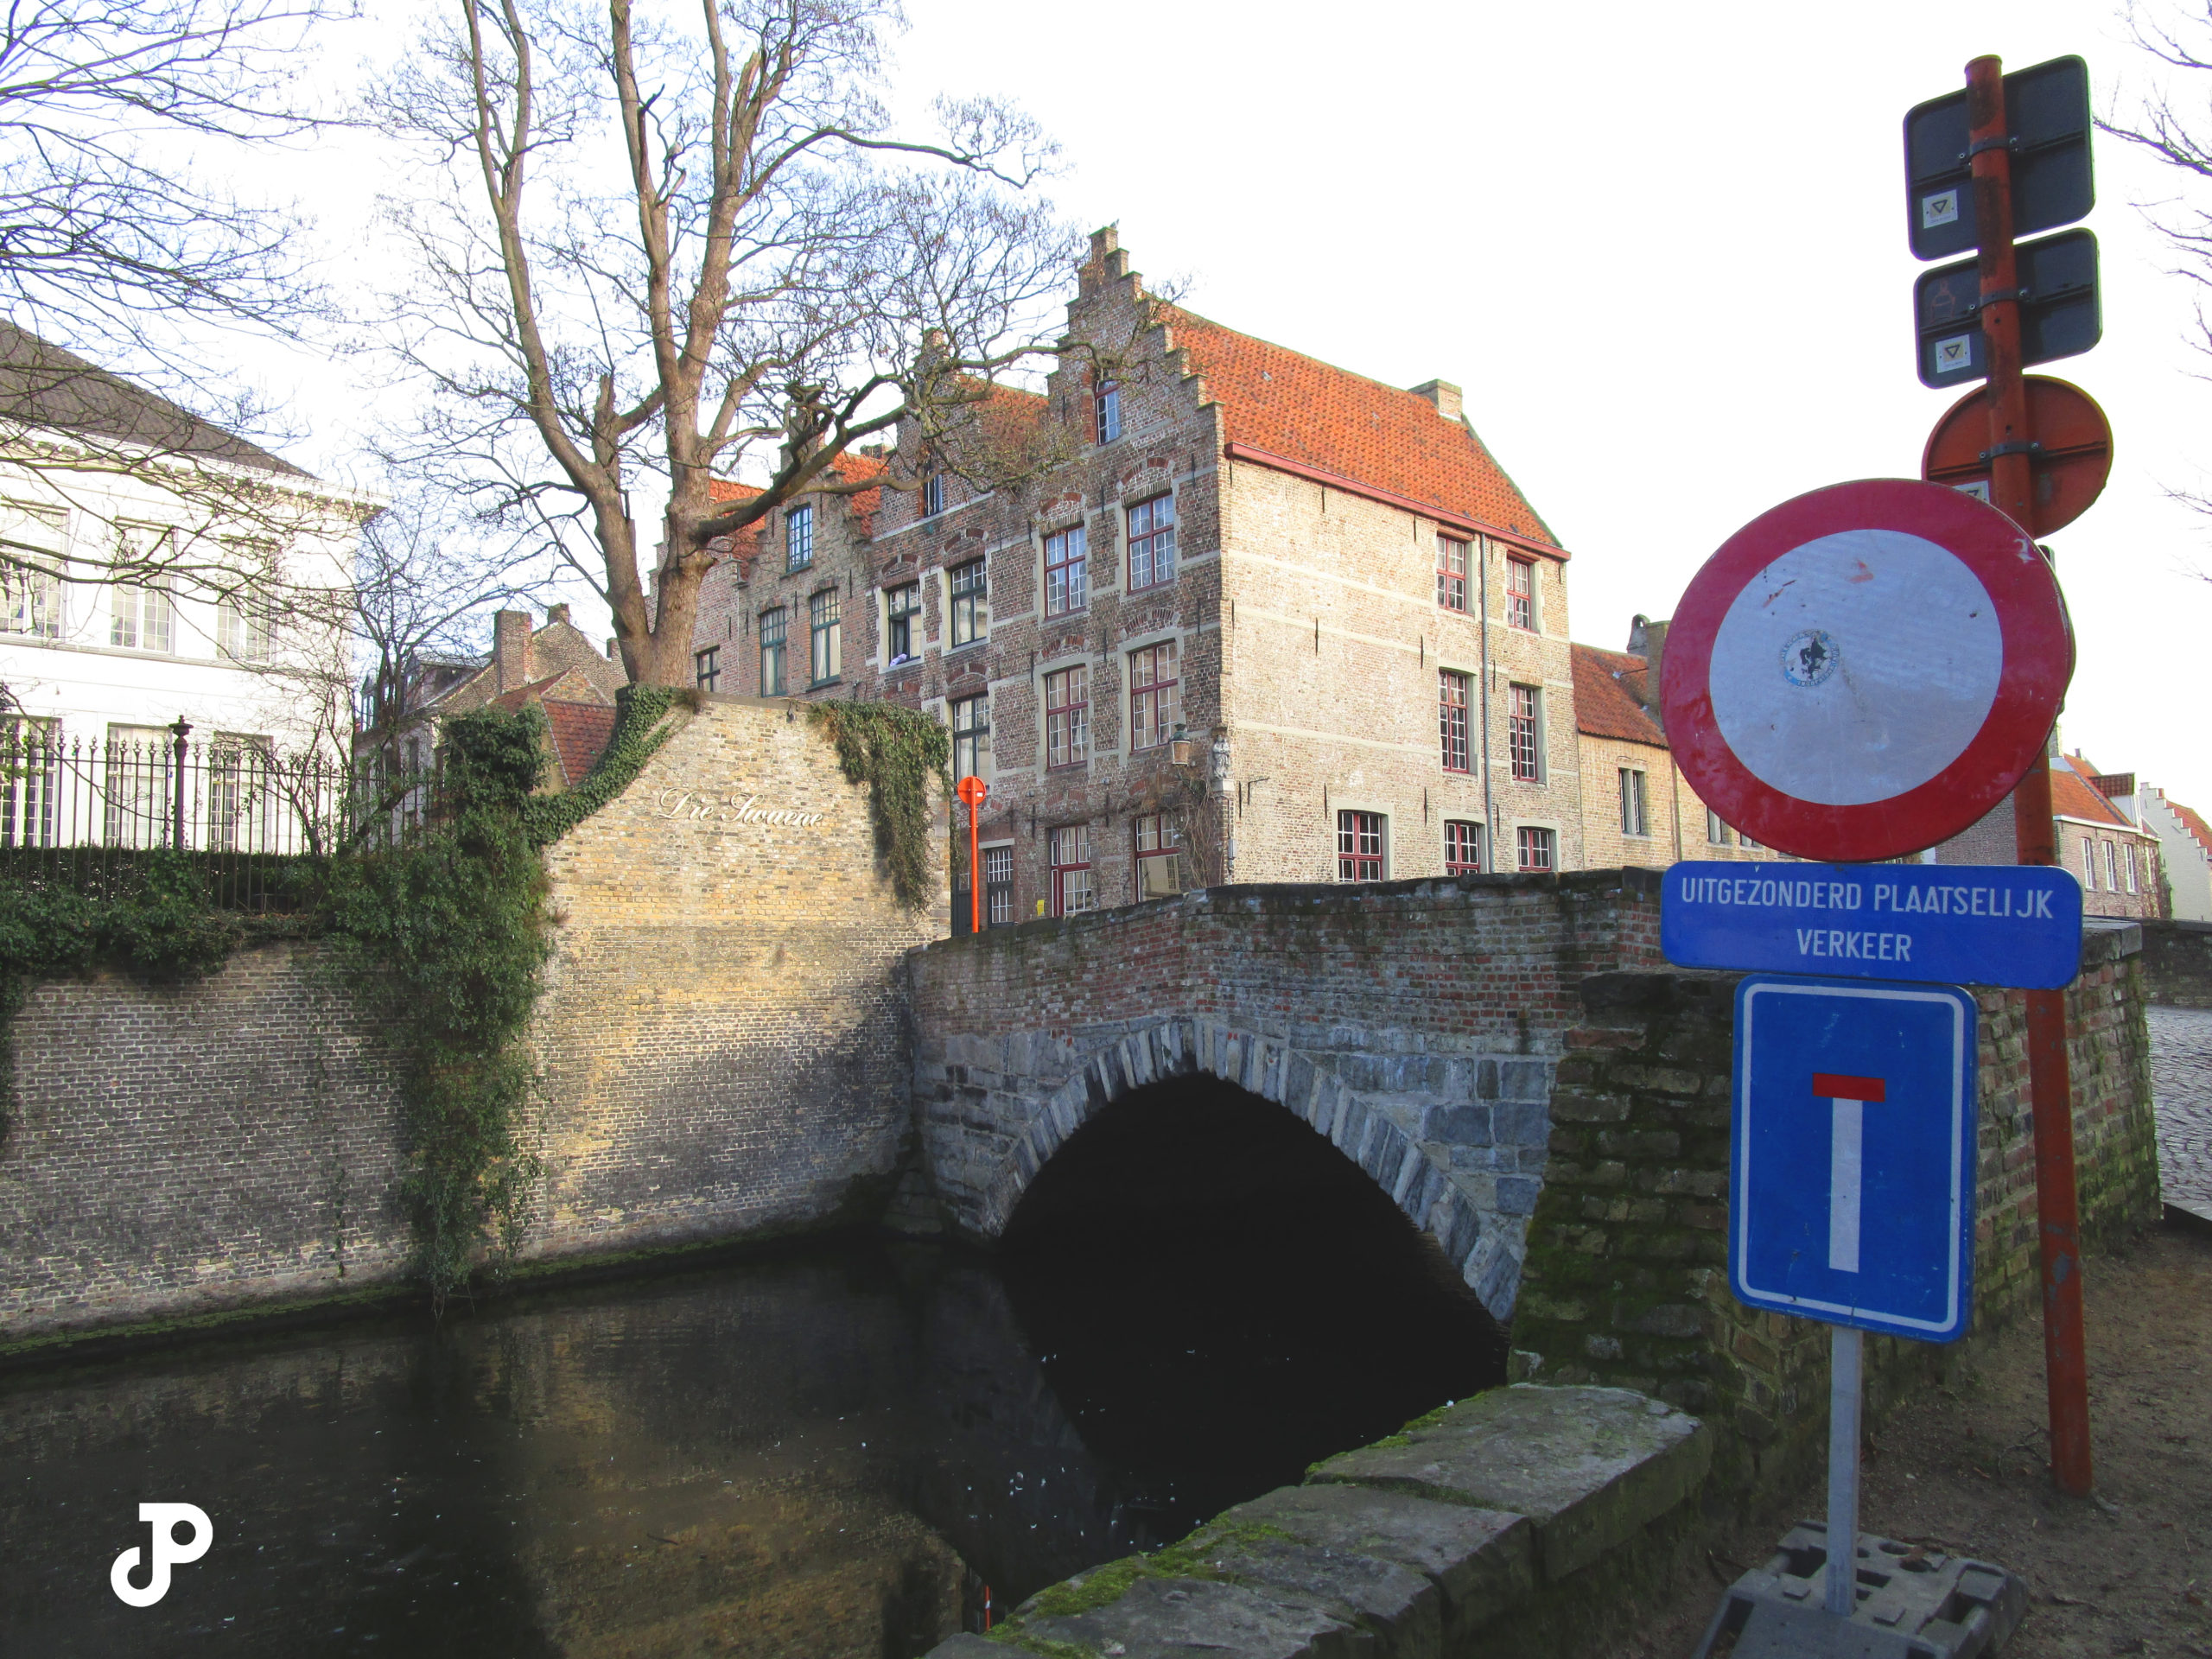 a brick bridge spanning a narrow canal